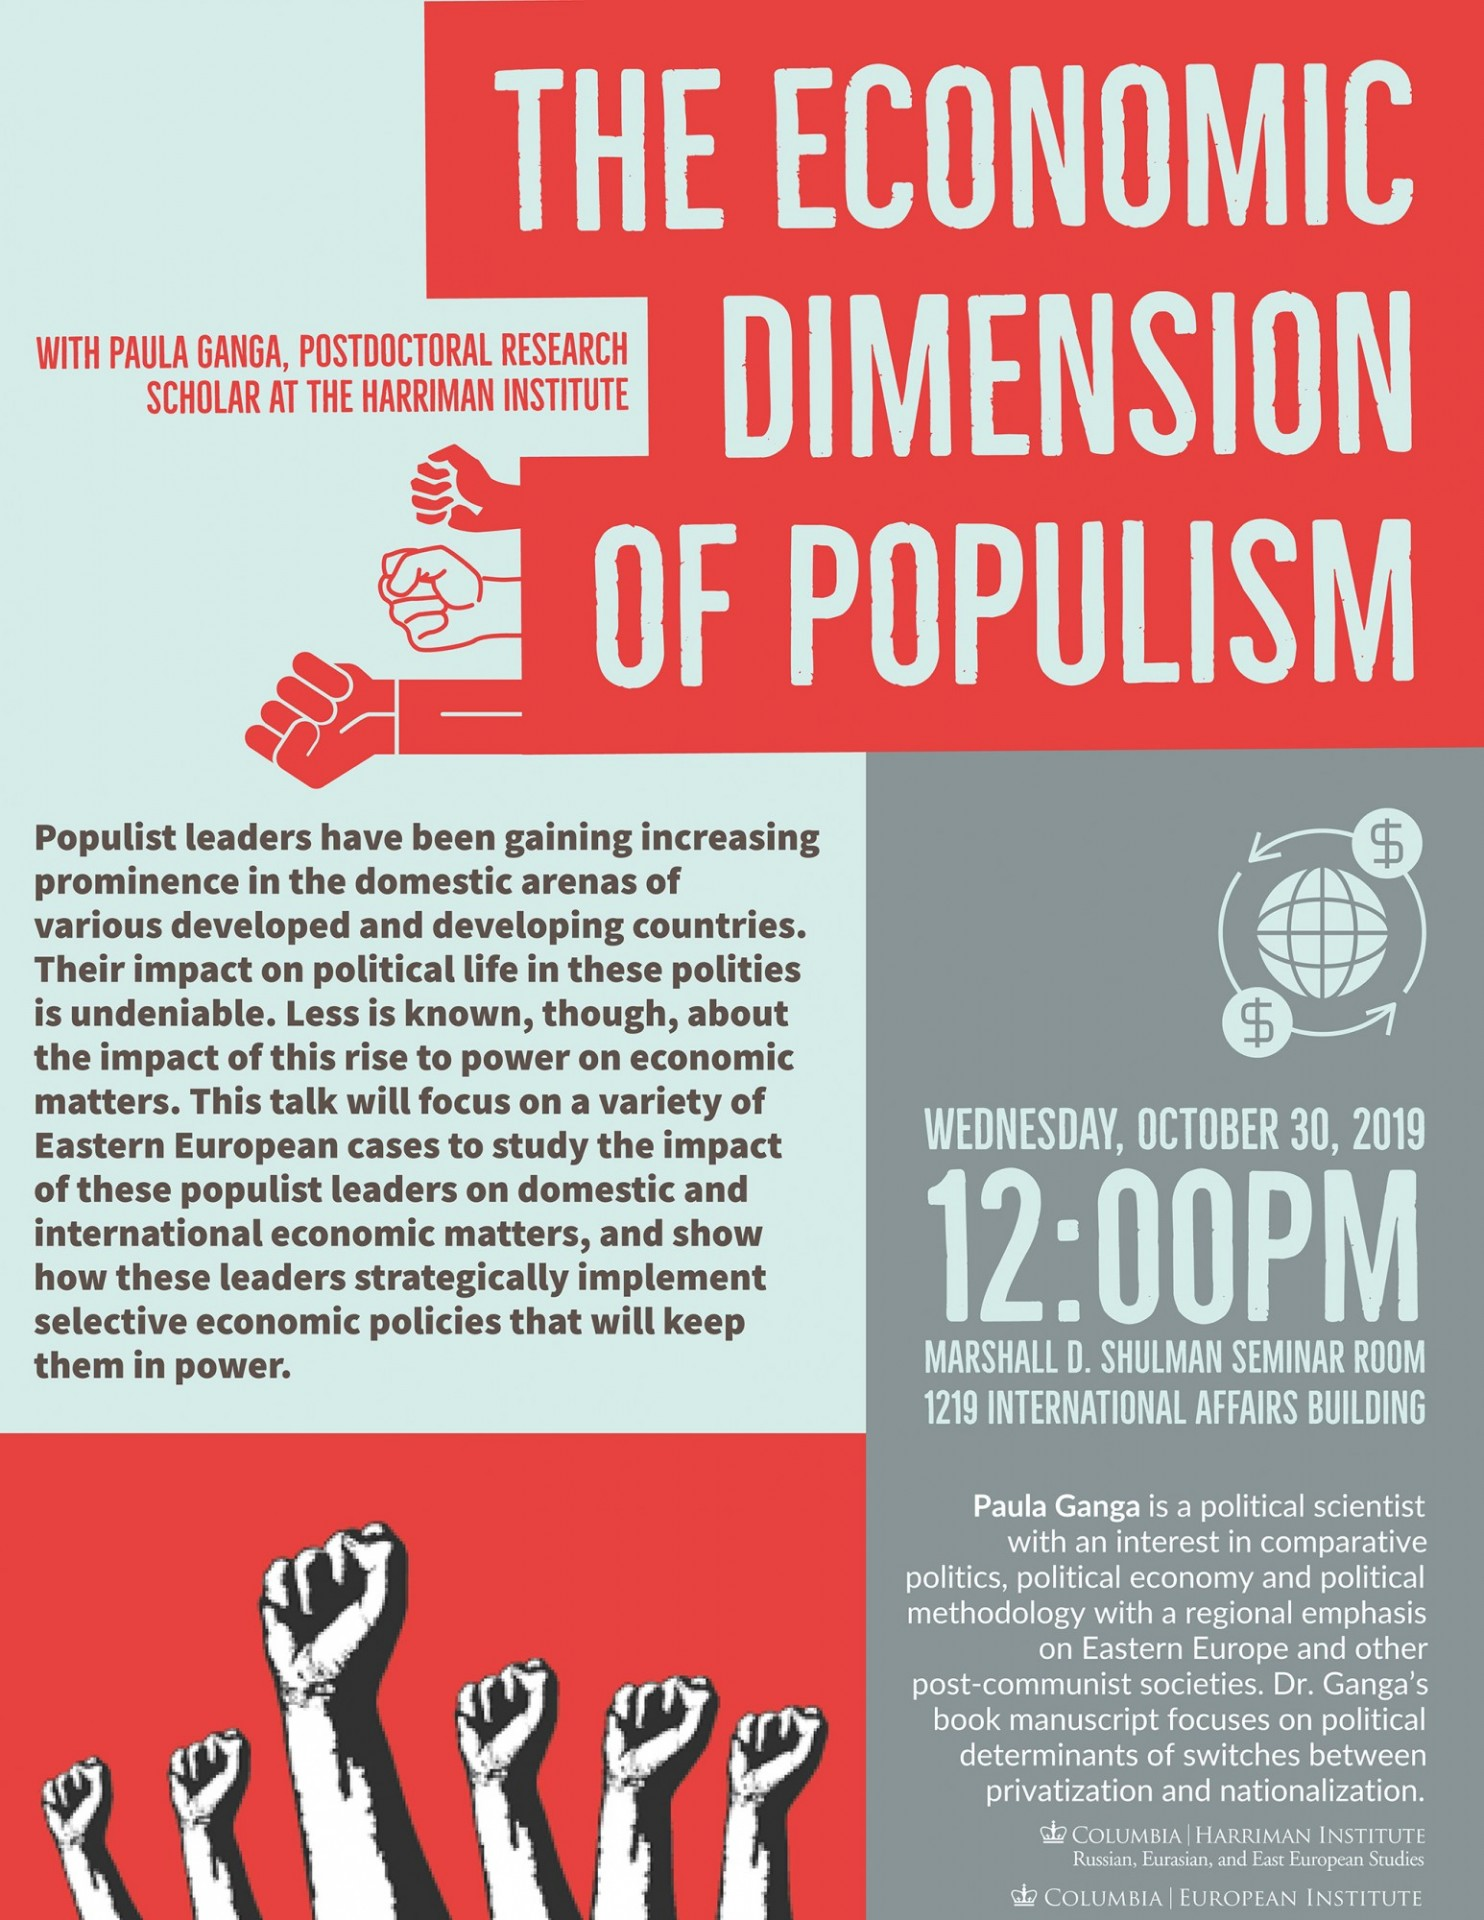 poster for event The Economic Dimension of Populism